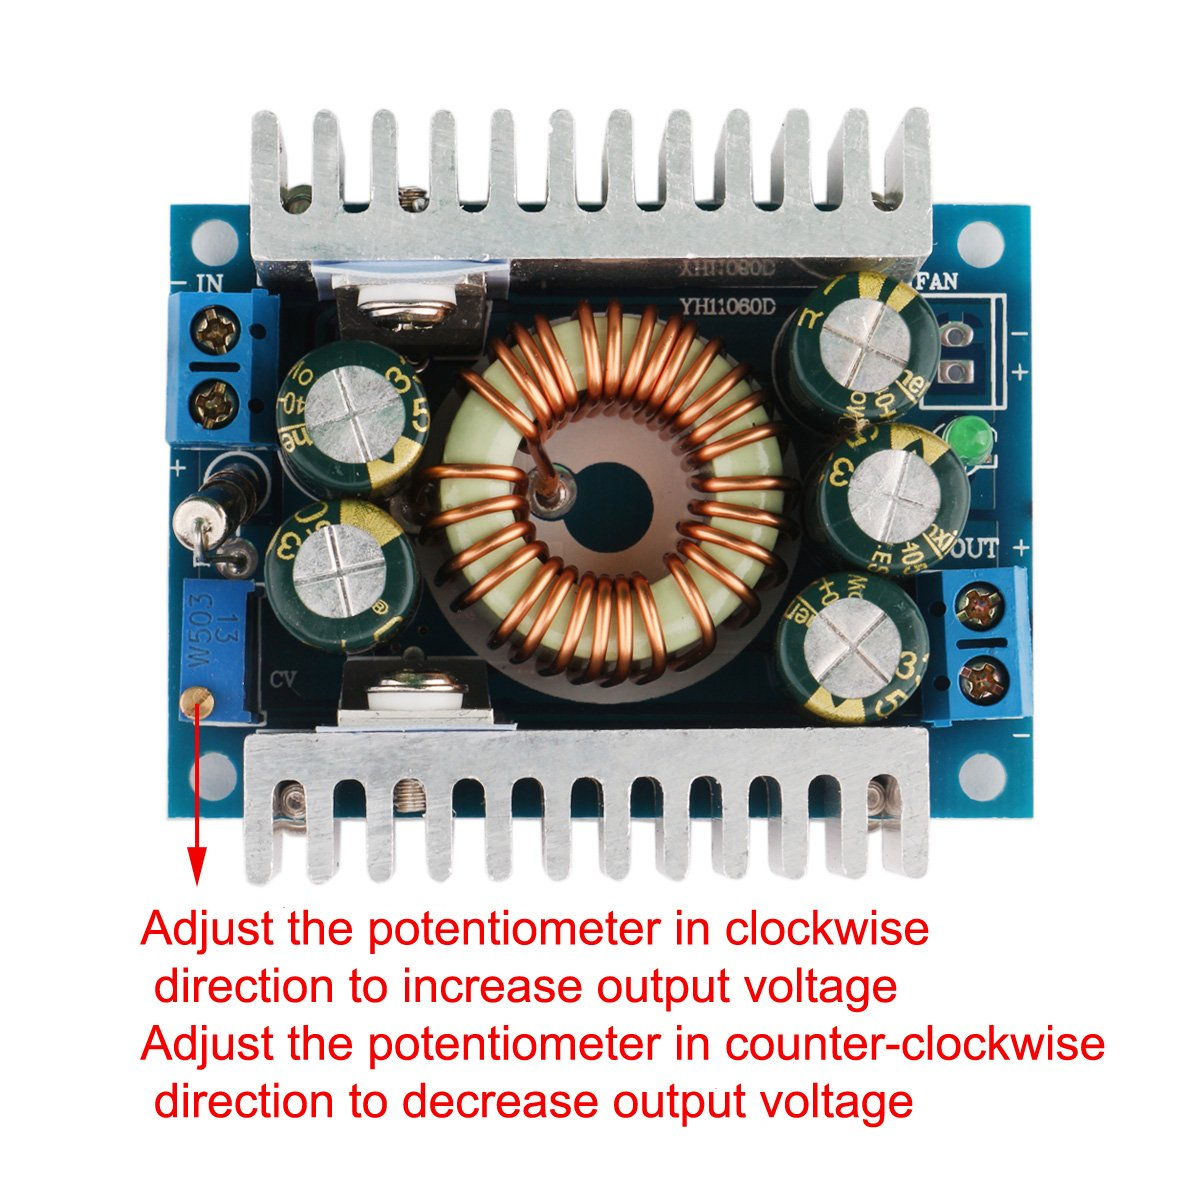 Drok Dc Car Power Supply Voltage Regulator Buck Converter 8a 100w Potentiometer Pc Cp200 Electronics Laboratory I Simple Circuits 12a Max 5 40v To 12 36v Step Down Volt Convert Module Tools Home